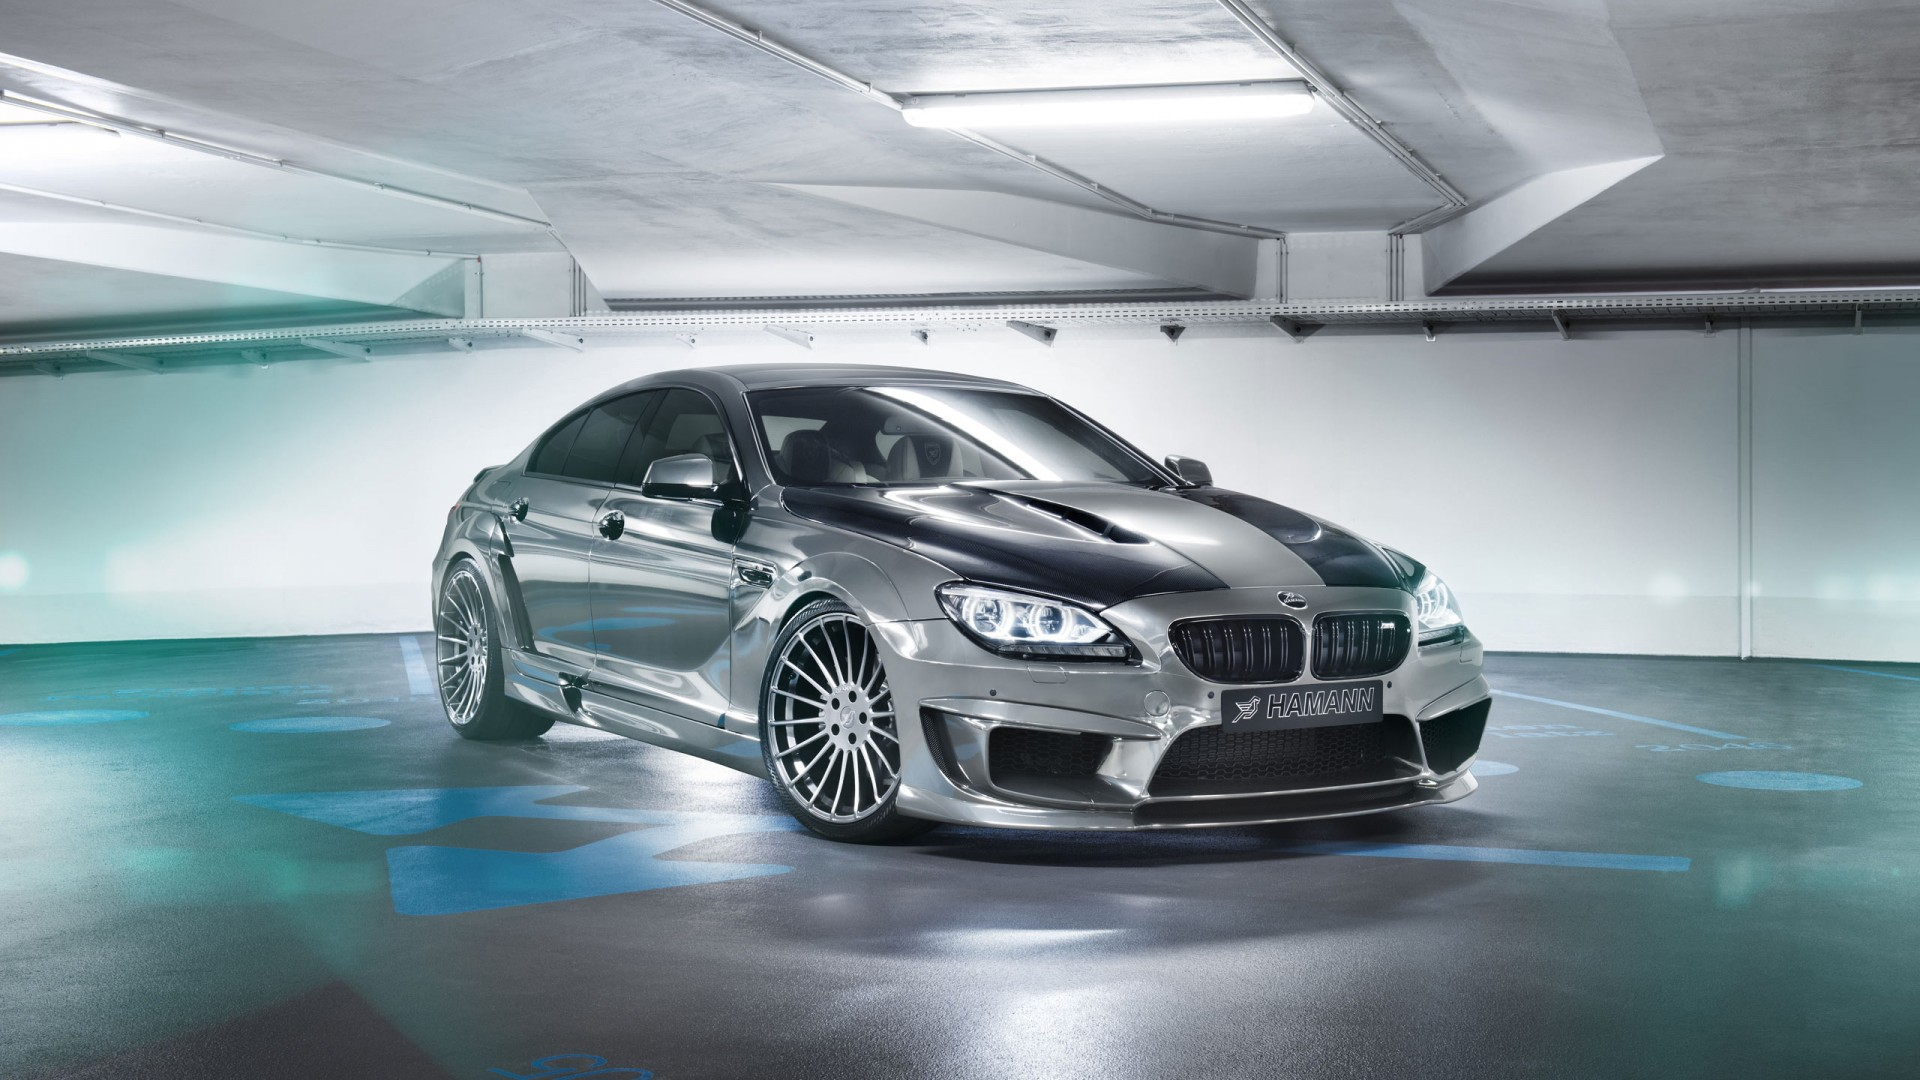 2014 Bmw M6 Gran Coupe By Hamann Wallpaper Hd Car Wallpapers Id 3842